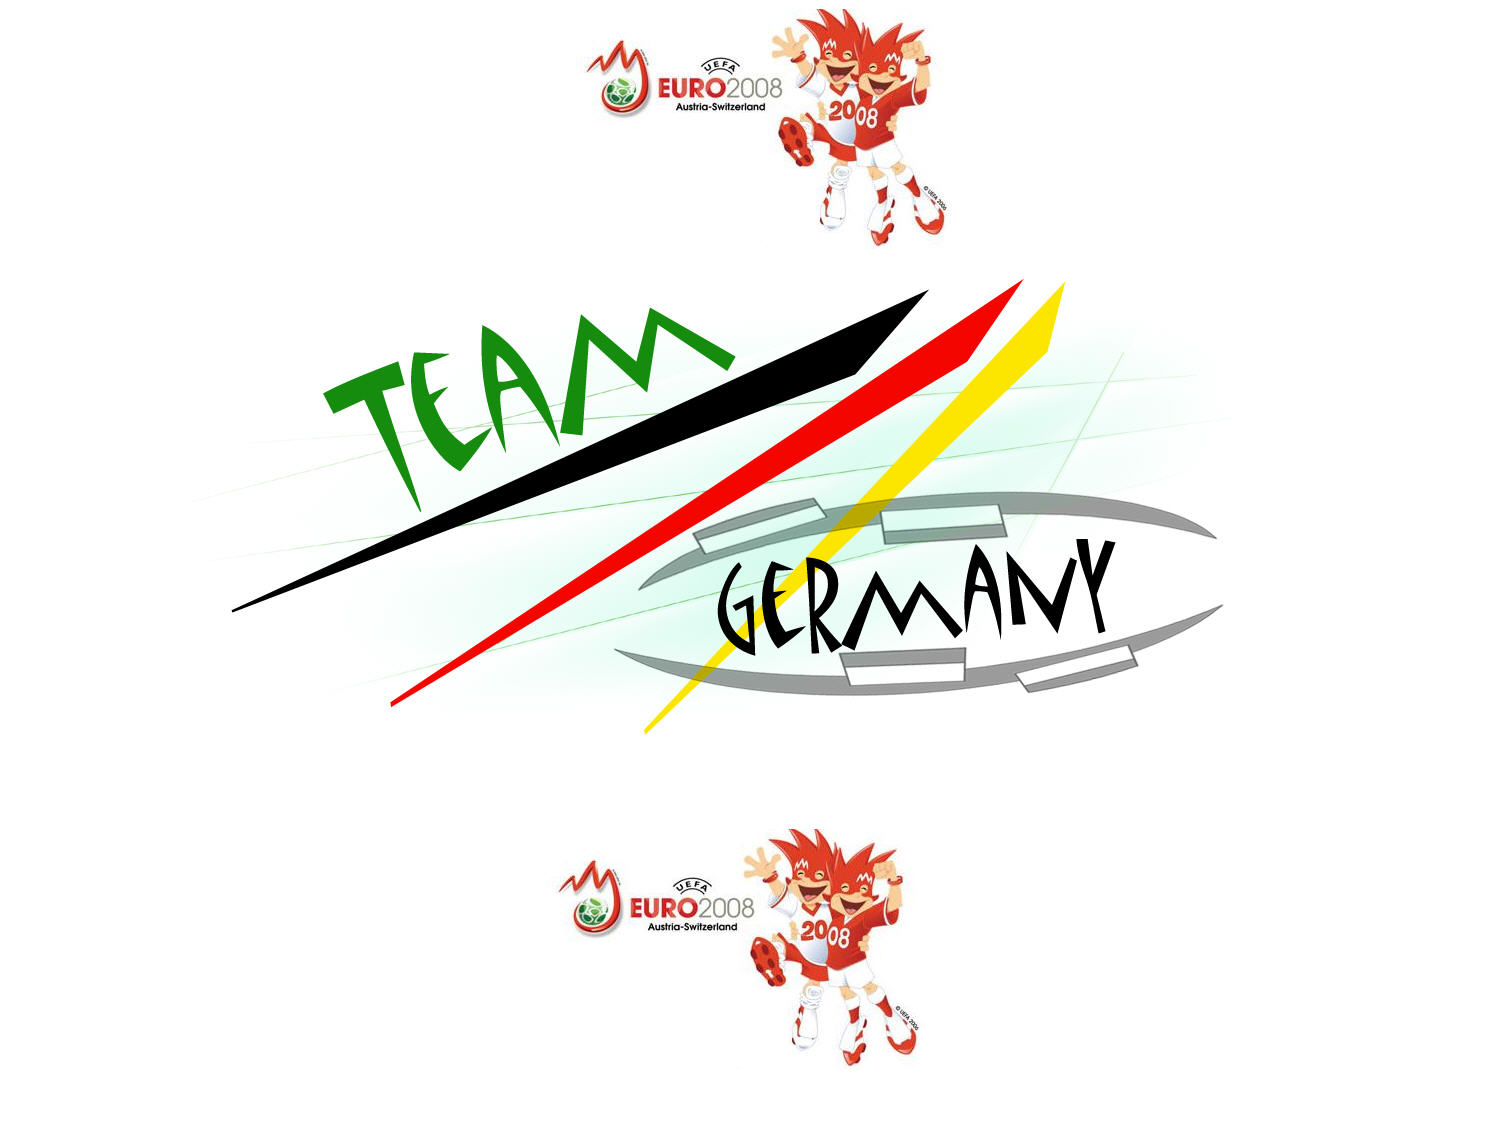 Germany soccer team wallpaper Football Pictures and Photos 1500x1125